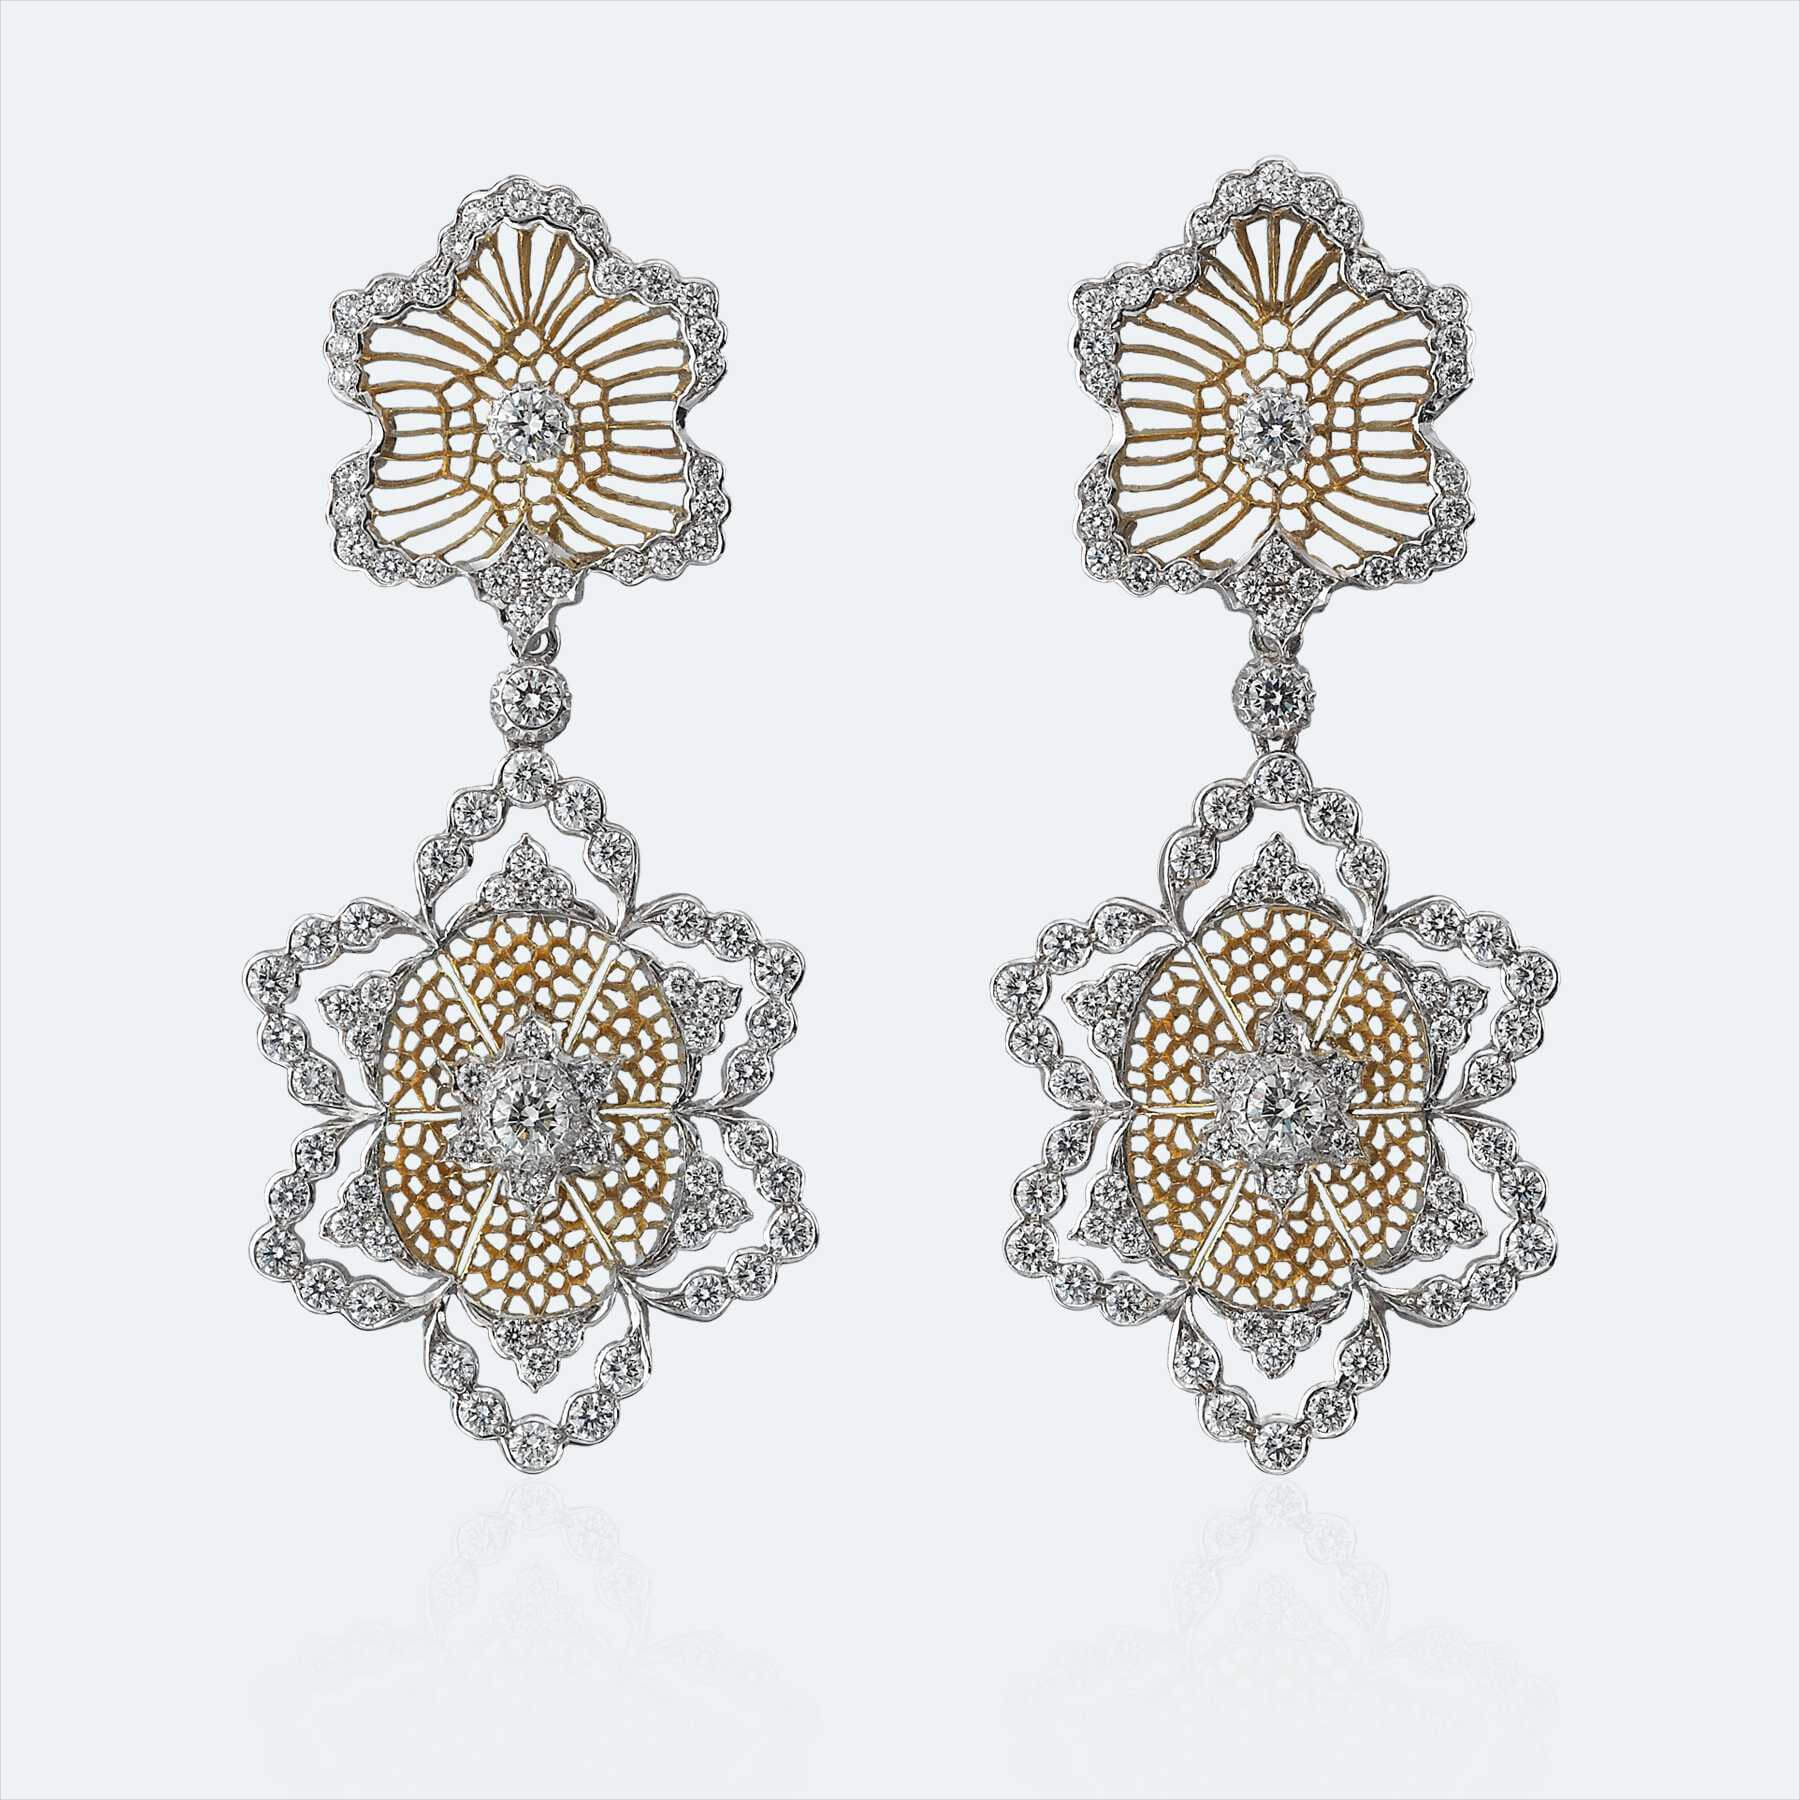 White and Yellow Gold with Diamonds (1)